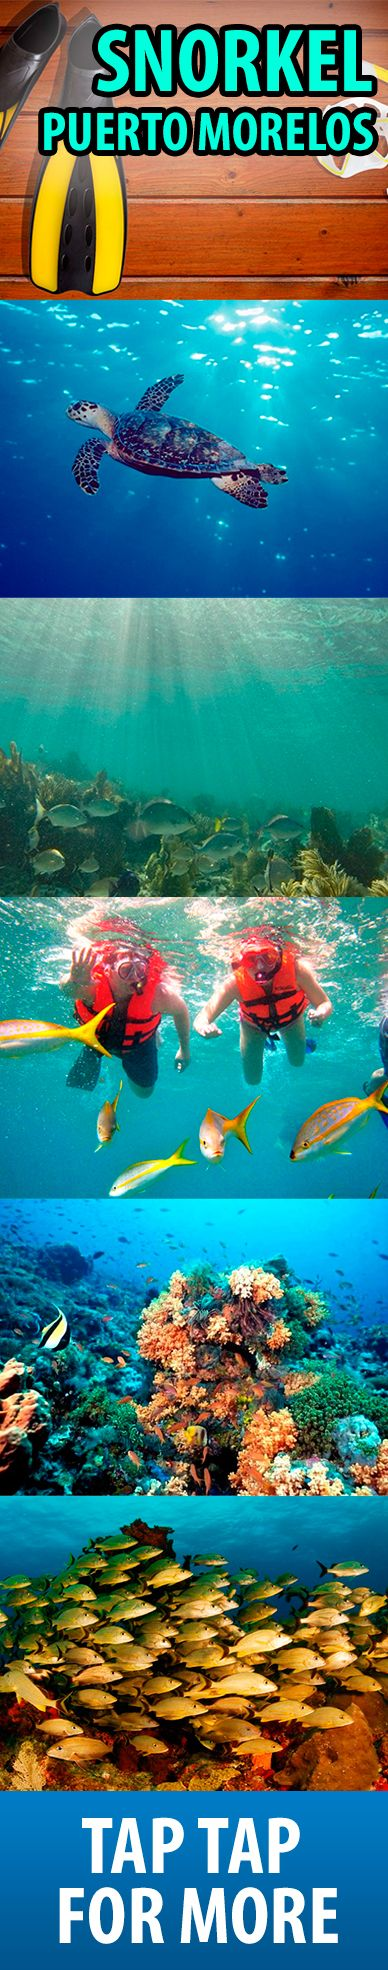 Have you ever snorkel before? These images will make you want to jump into the ocean and see all the marine life, just like this ones from Puerto Morelos, Mexico.. this is an unforgettable experience that you can not miss!